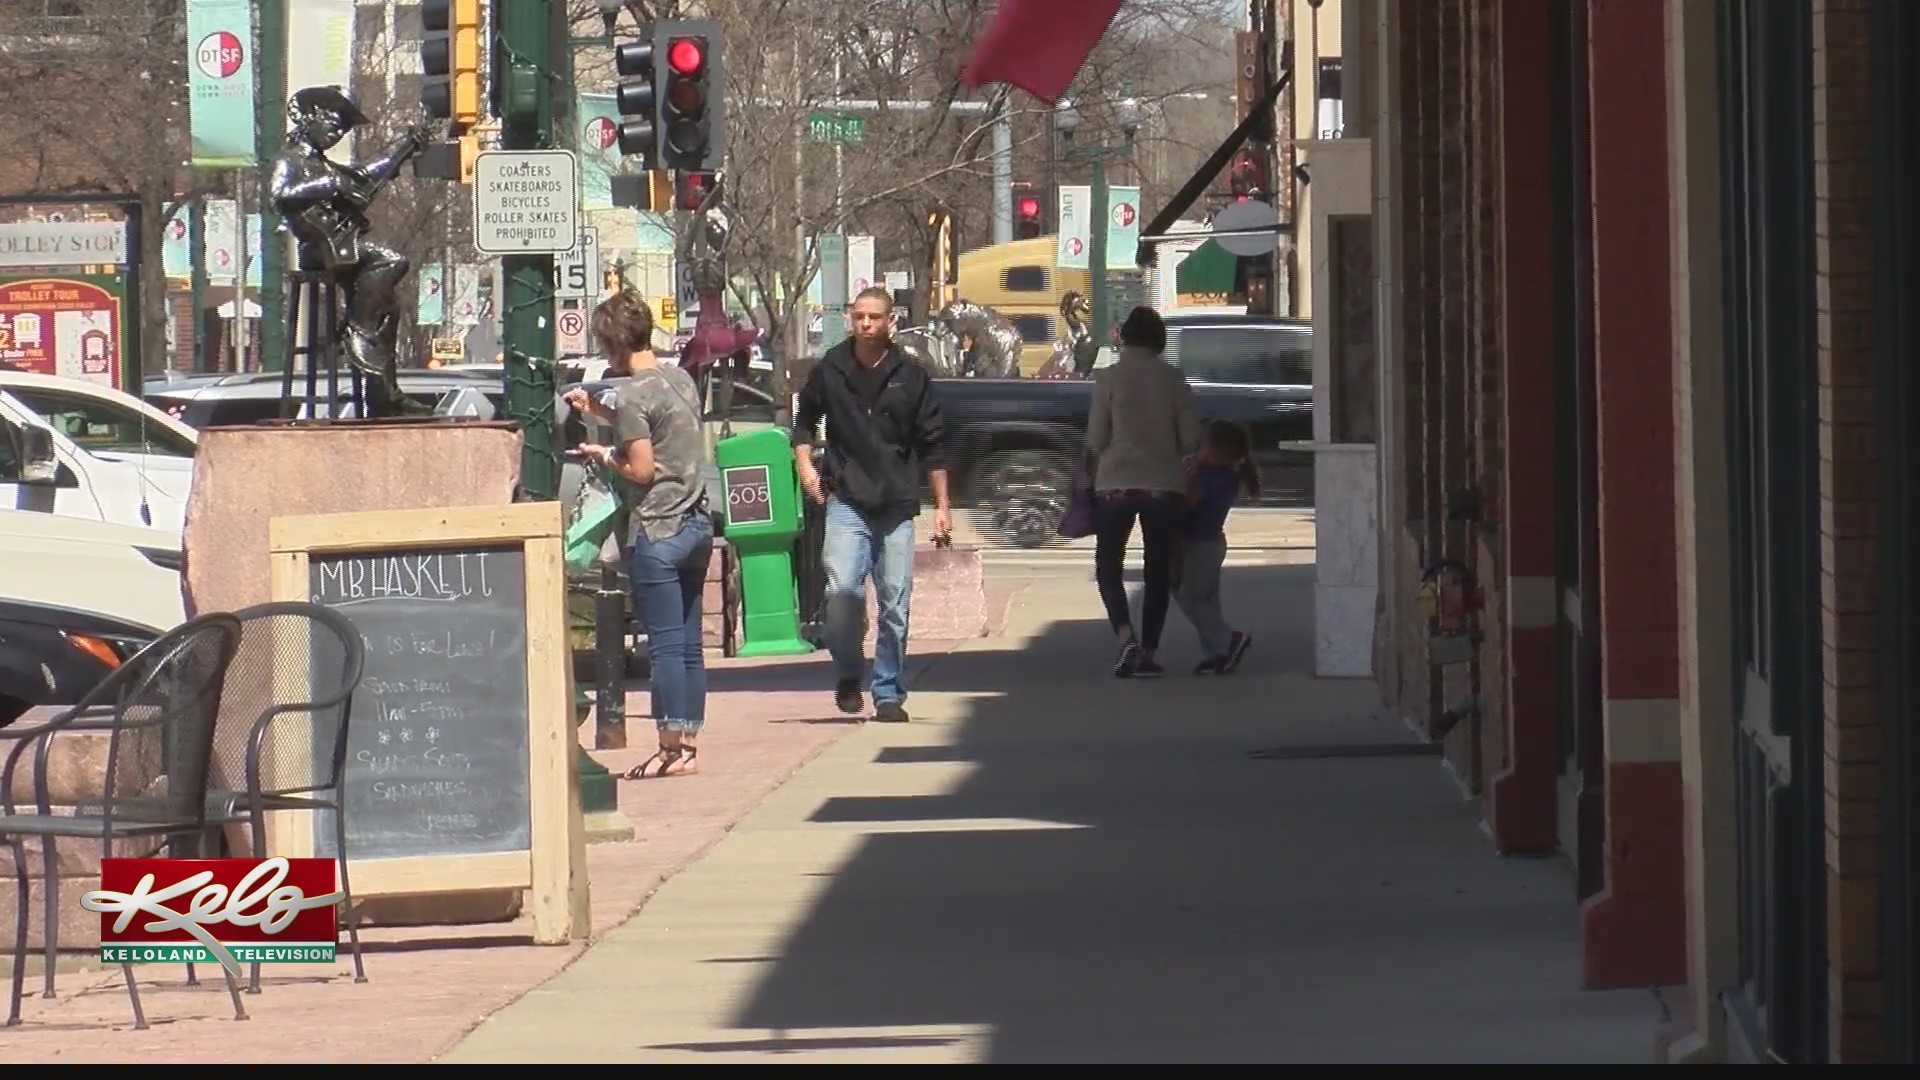 Tourism a growing industry in South Dakota